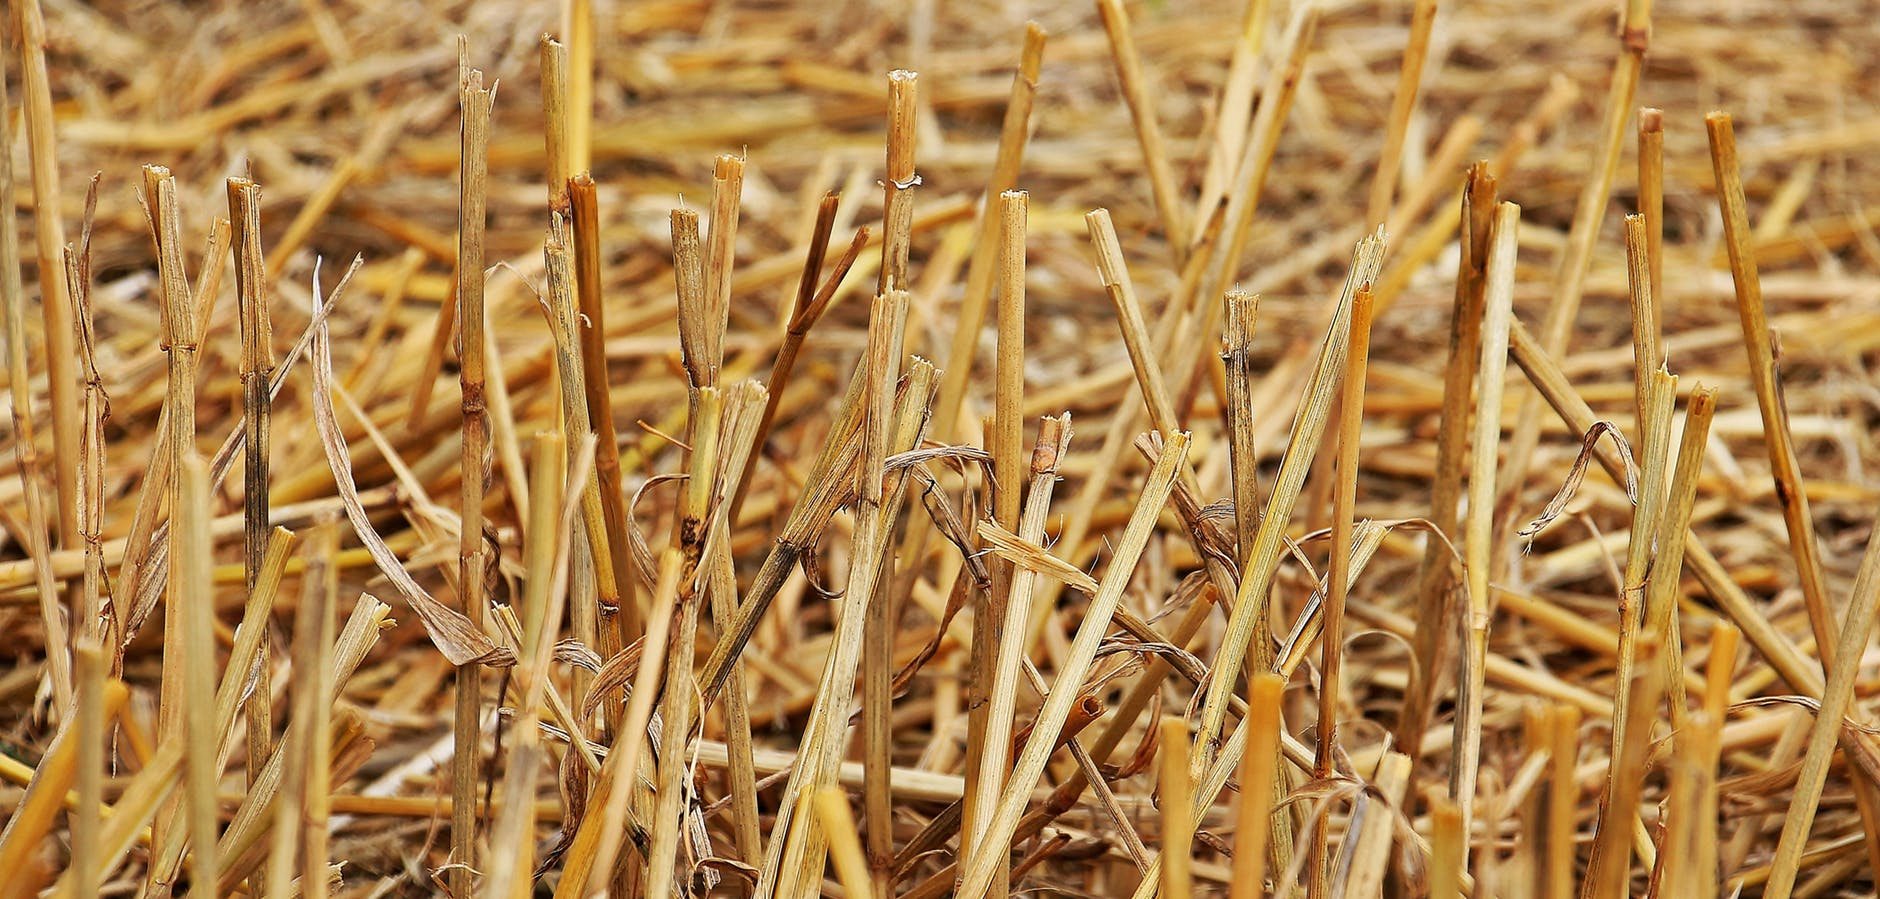 stubble-harvest-straw-agriculture-158198.jpeg